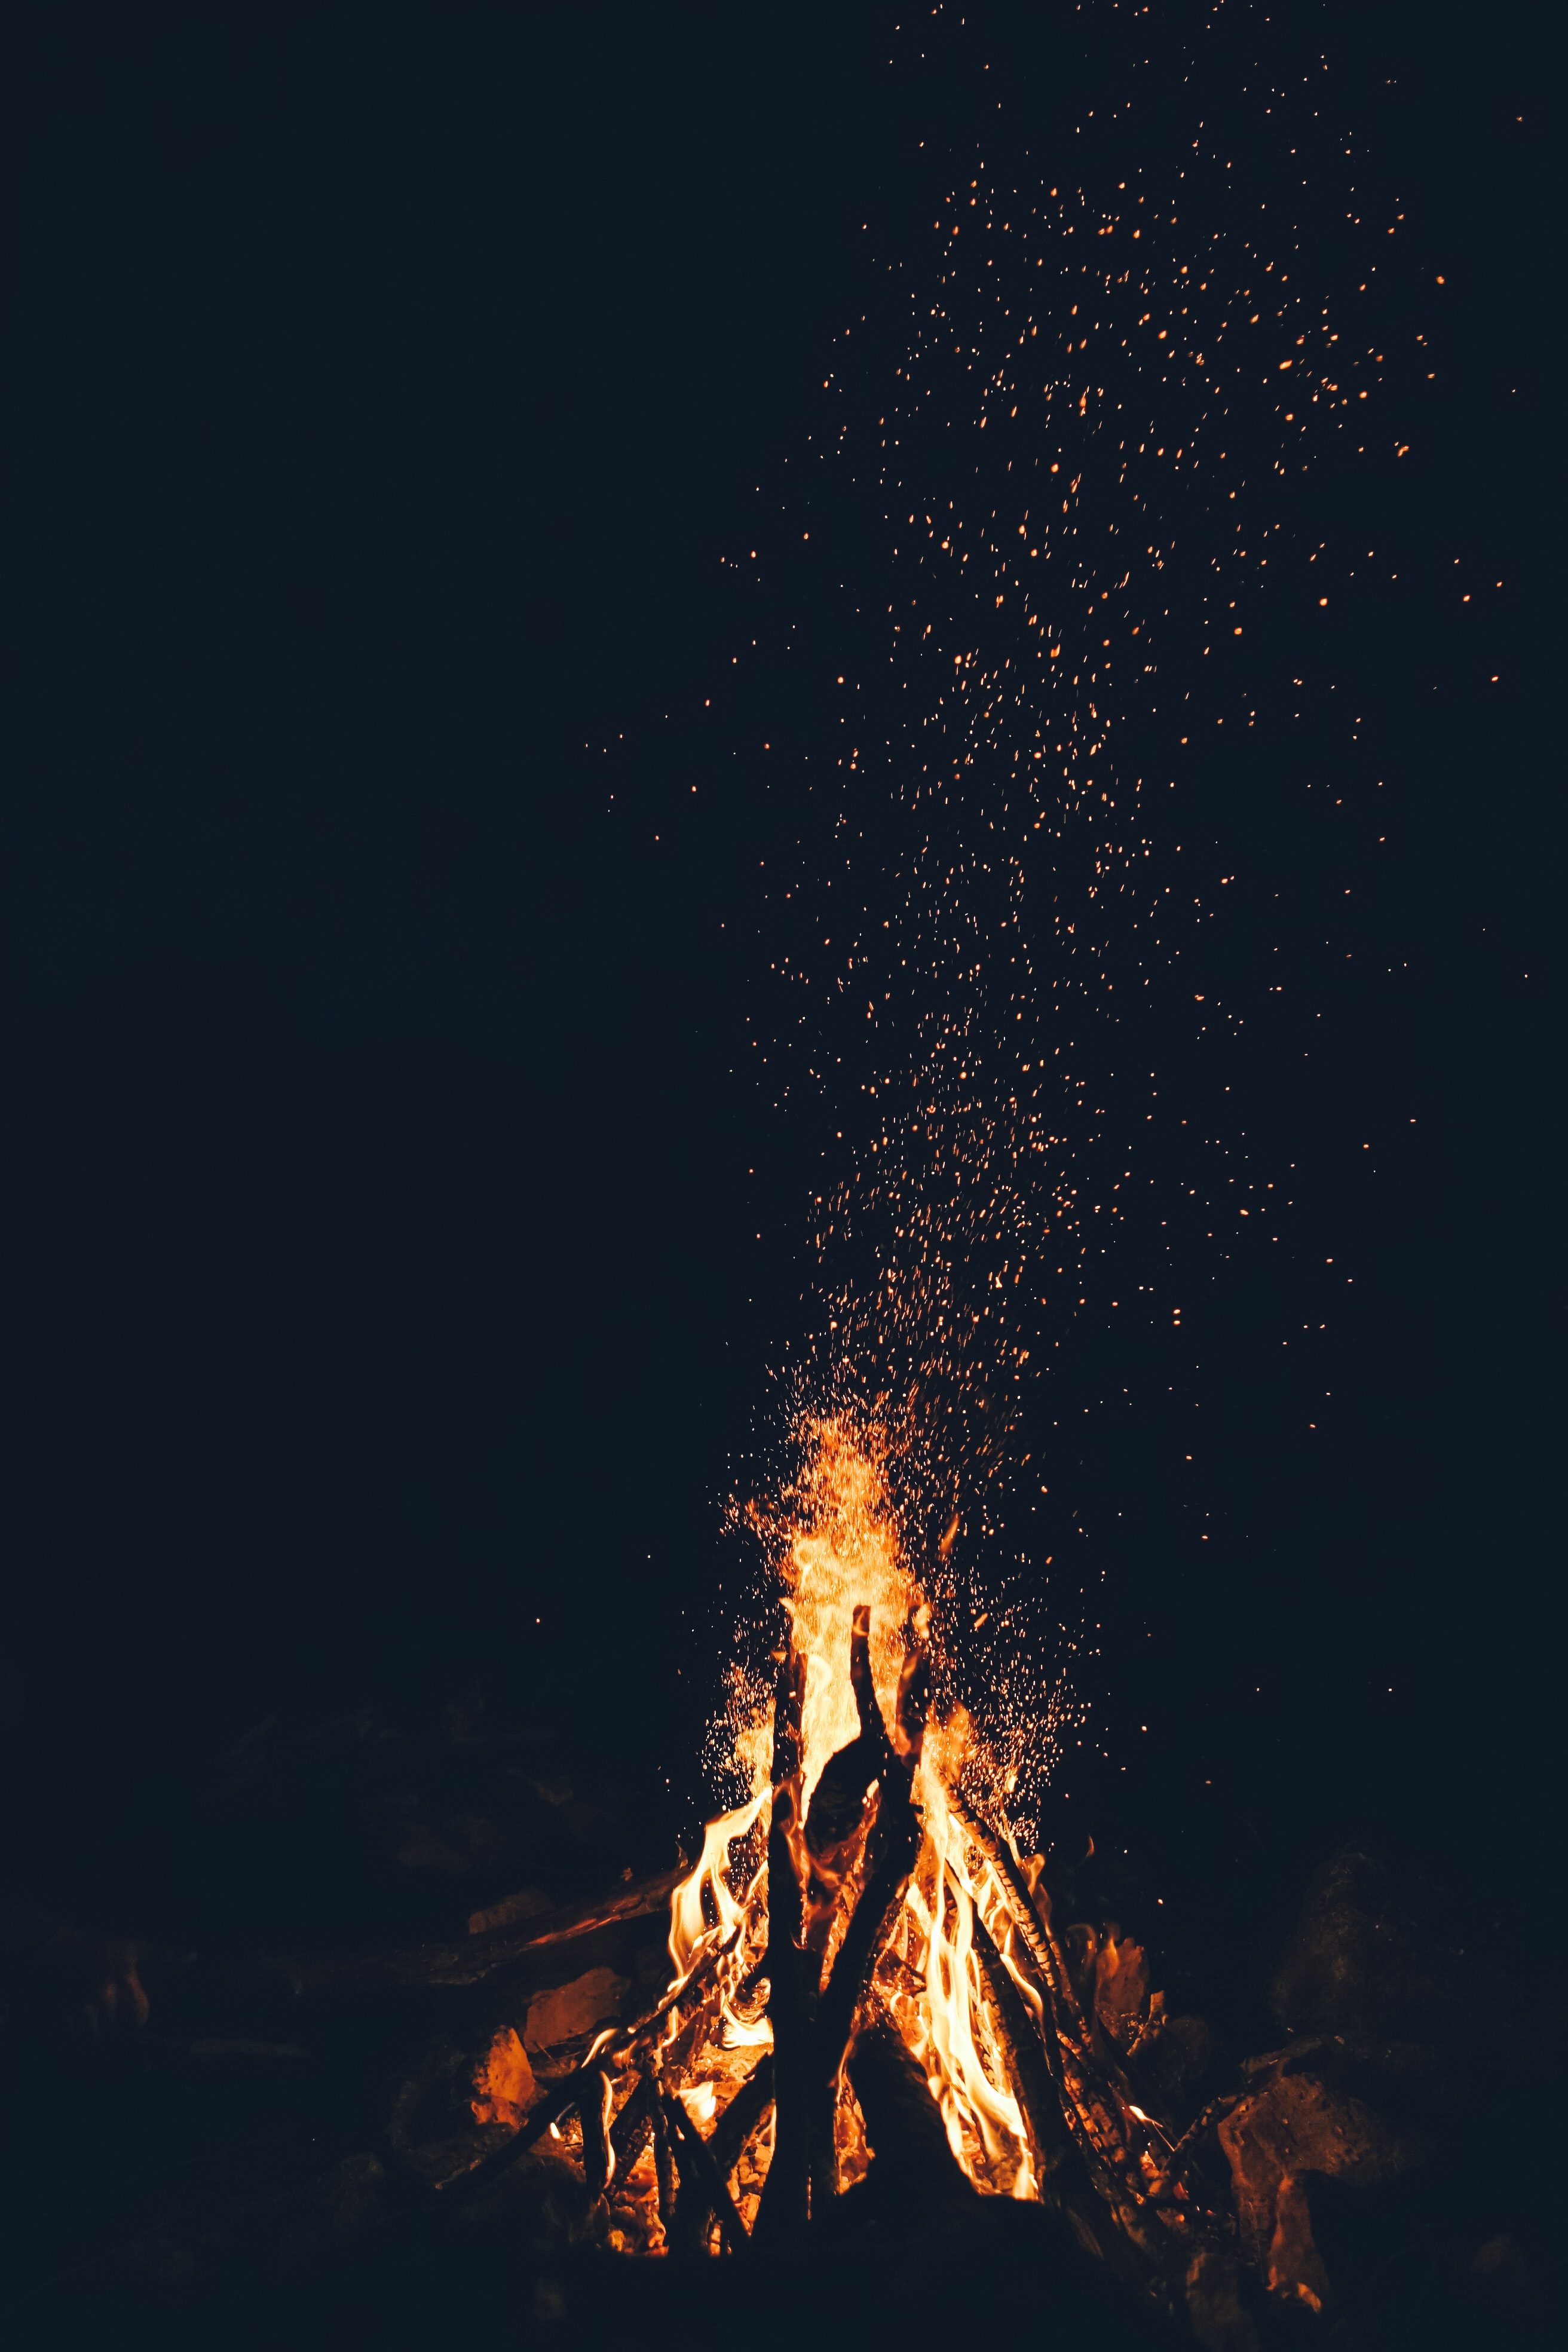 Fire Wallpapers Free Hd Download 500 Hq Unsplash